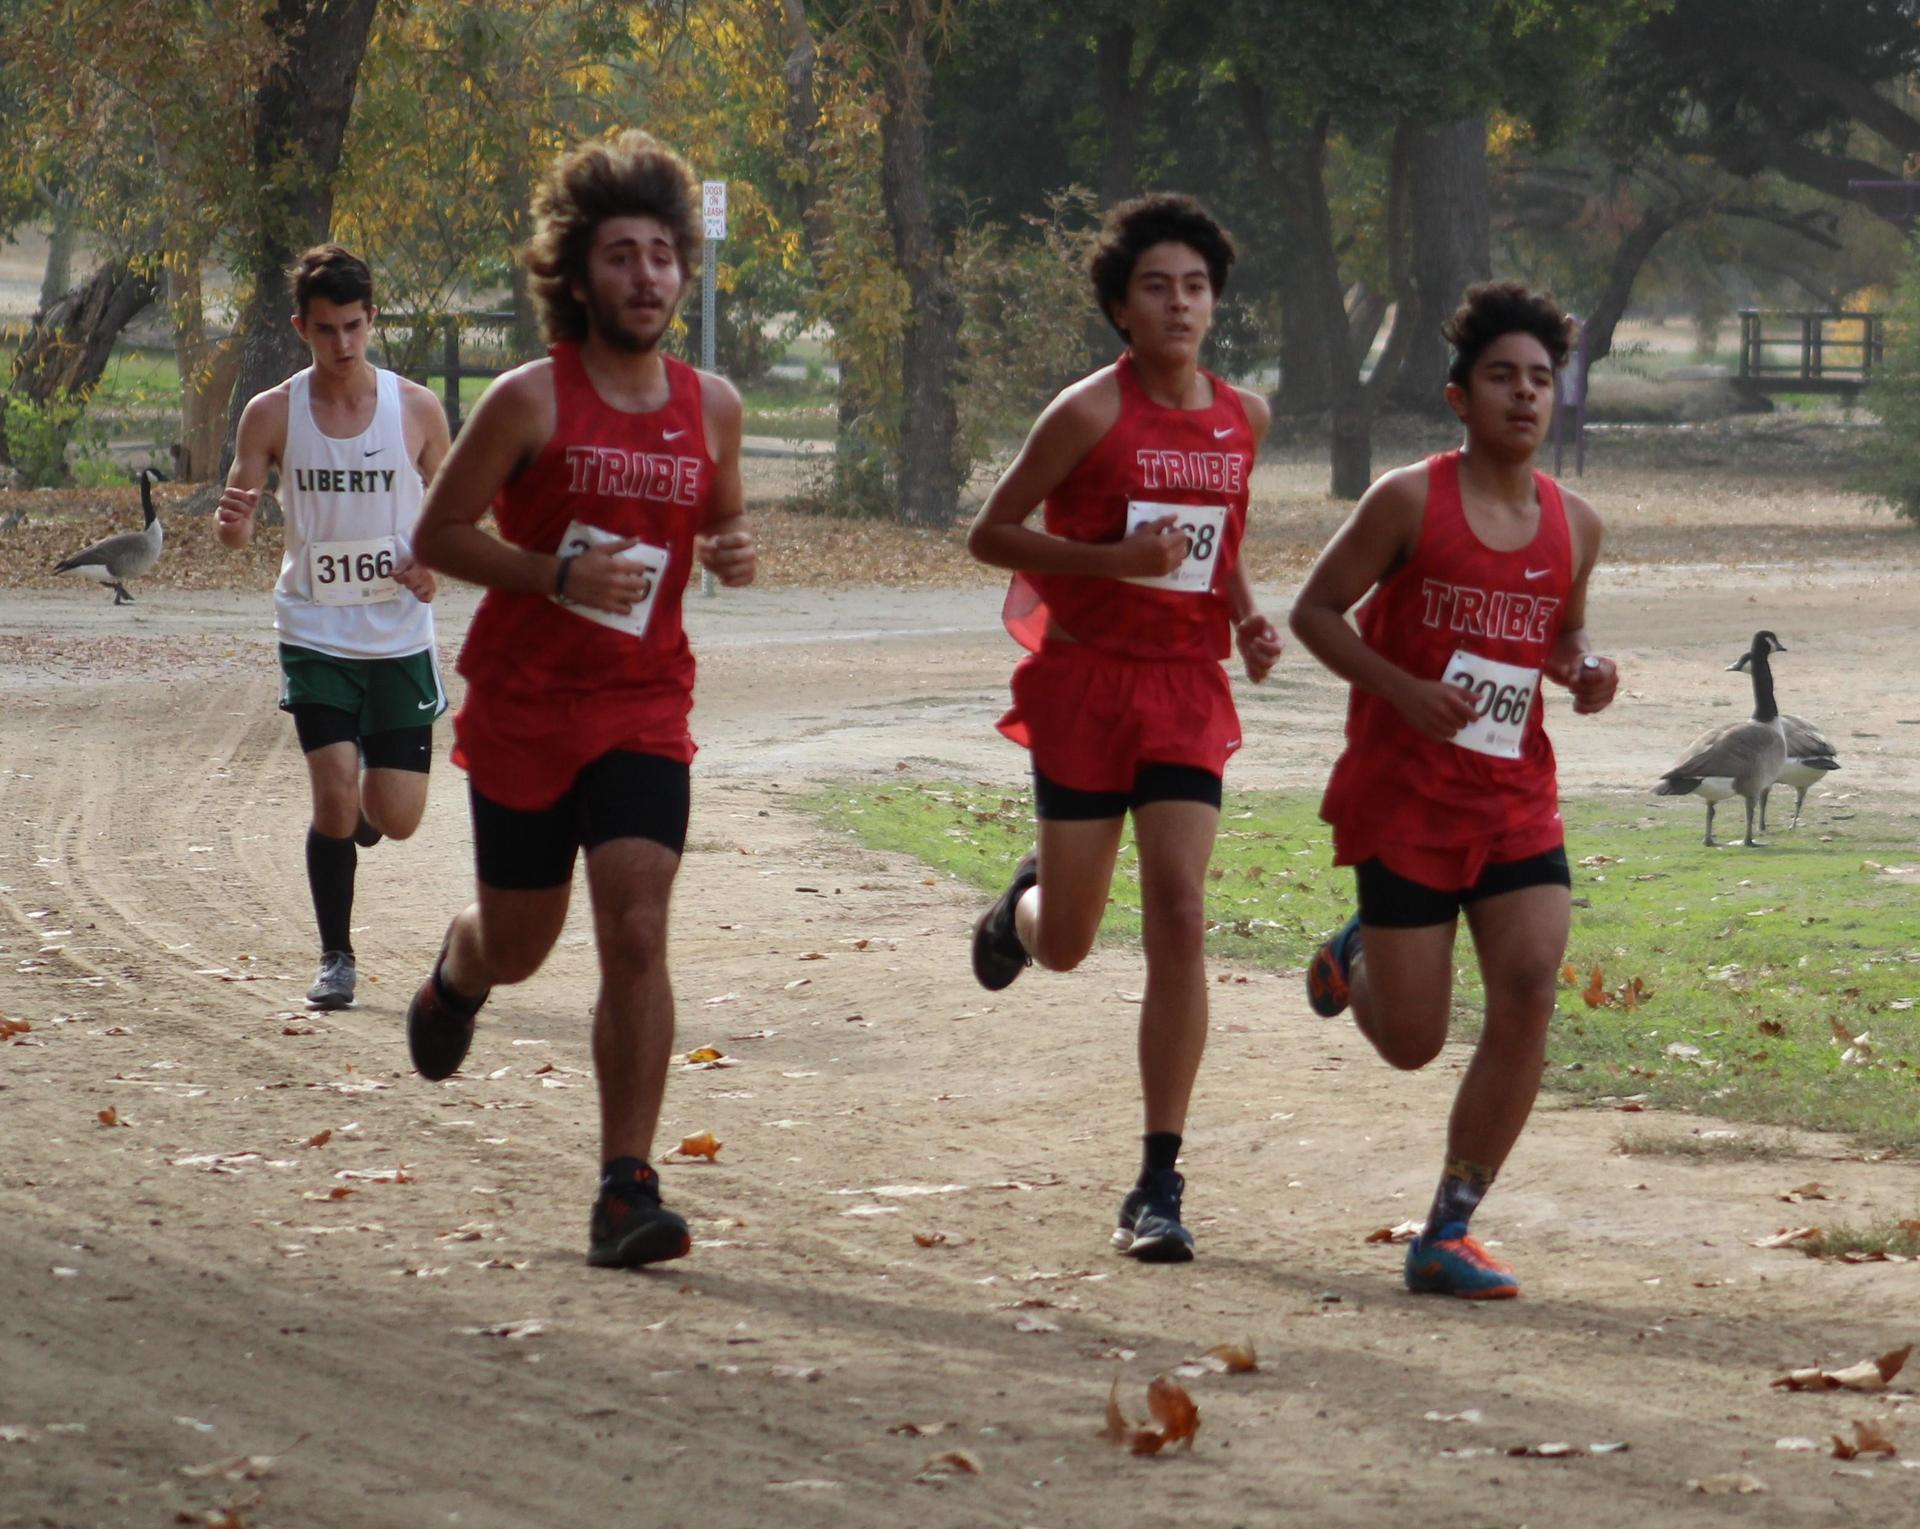 Antonio Brasil, Nicholas Lopez and Angel Gonzales running